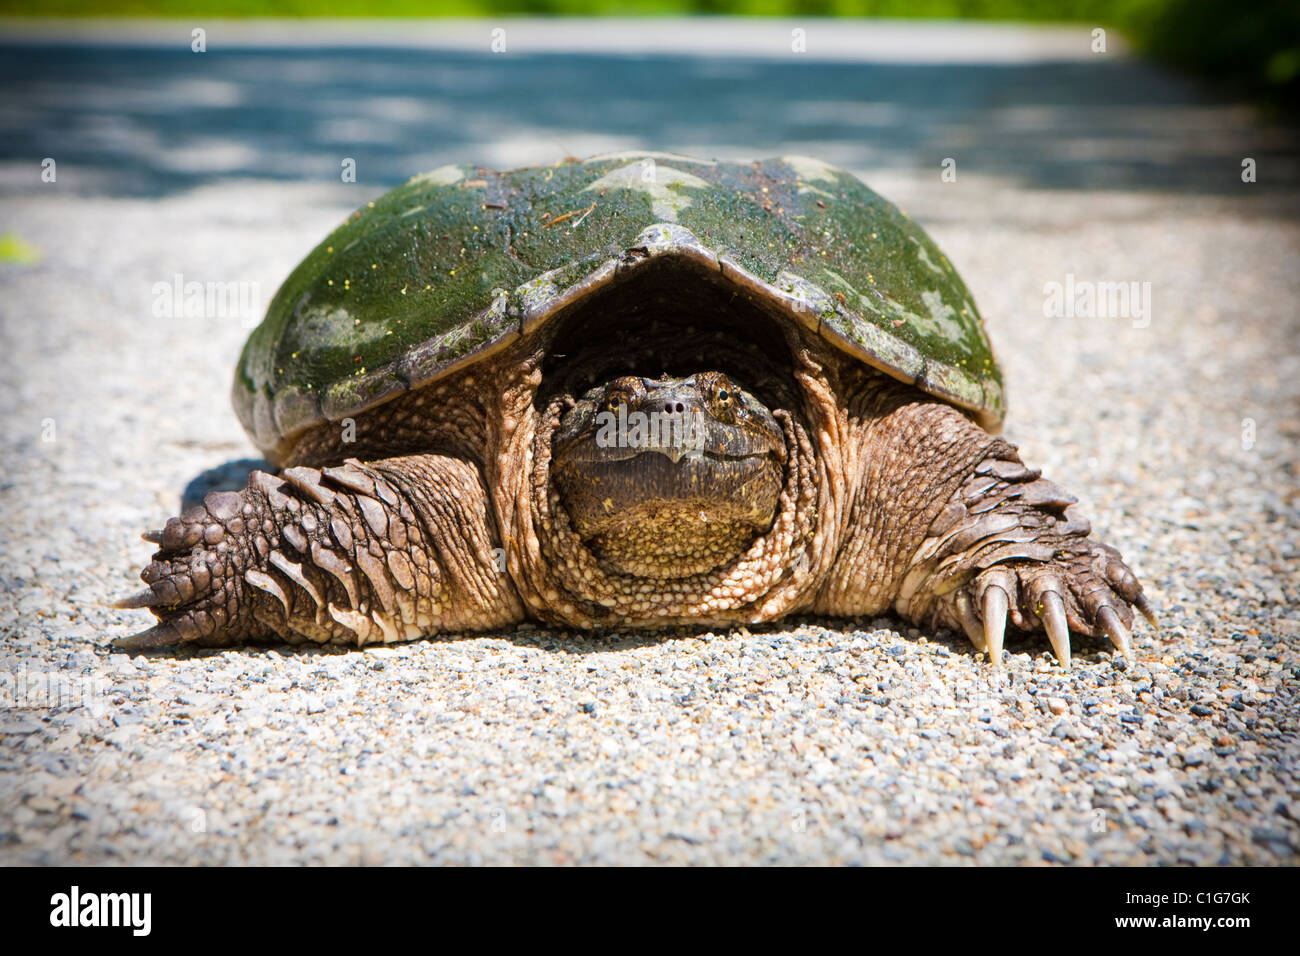 A large snapper turtle seen on the road of Stokes Forest, NJ, USA Stock Photo